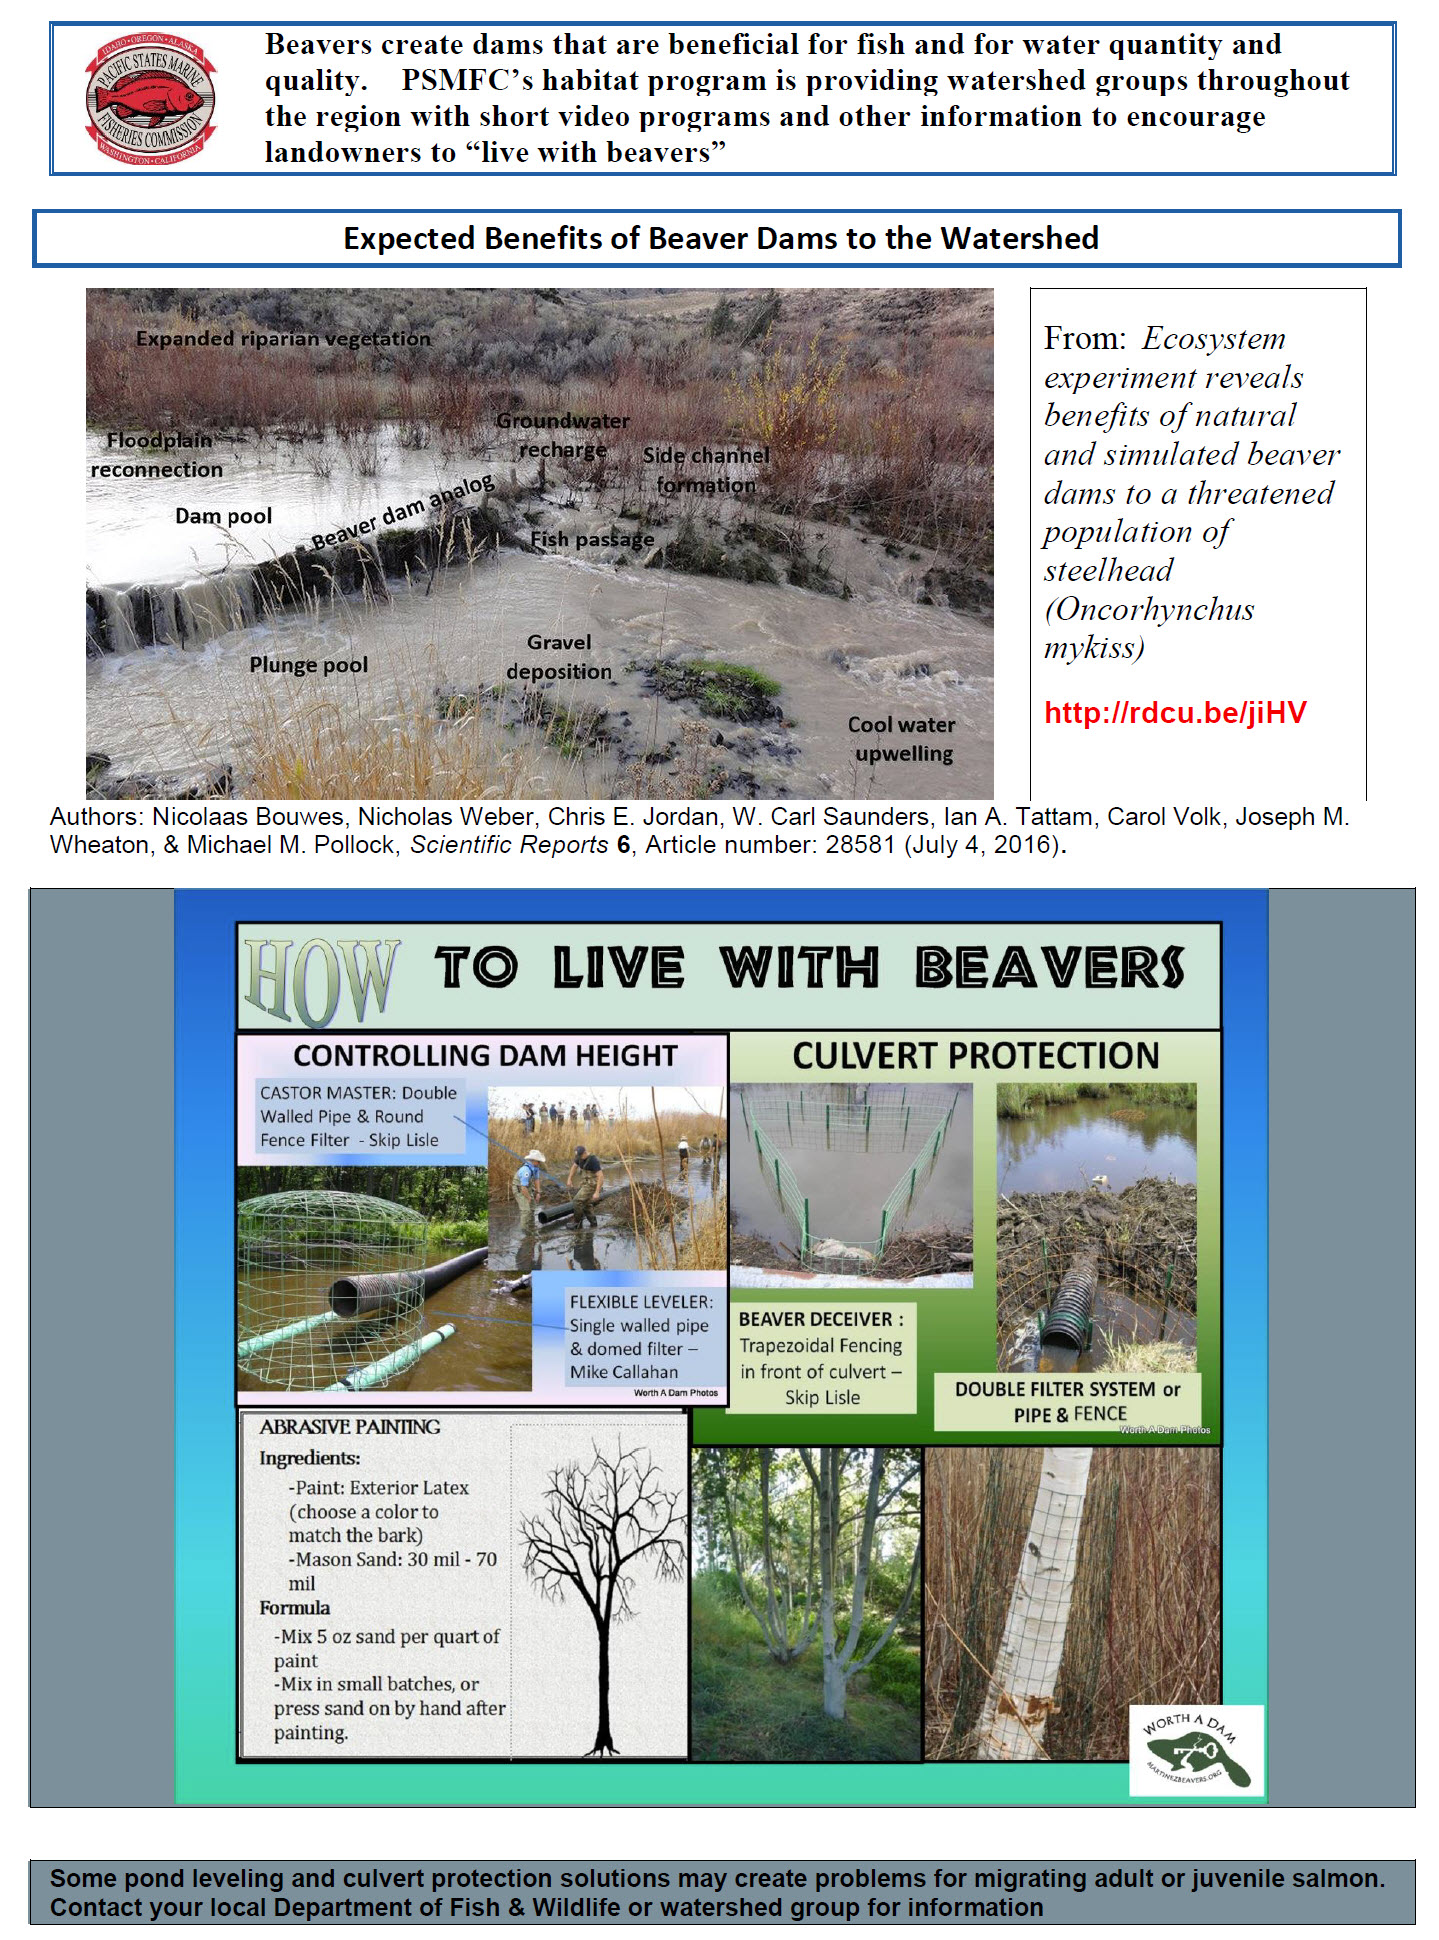 Expected Benefits of Beaver Dams to the Watershed